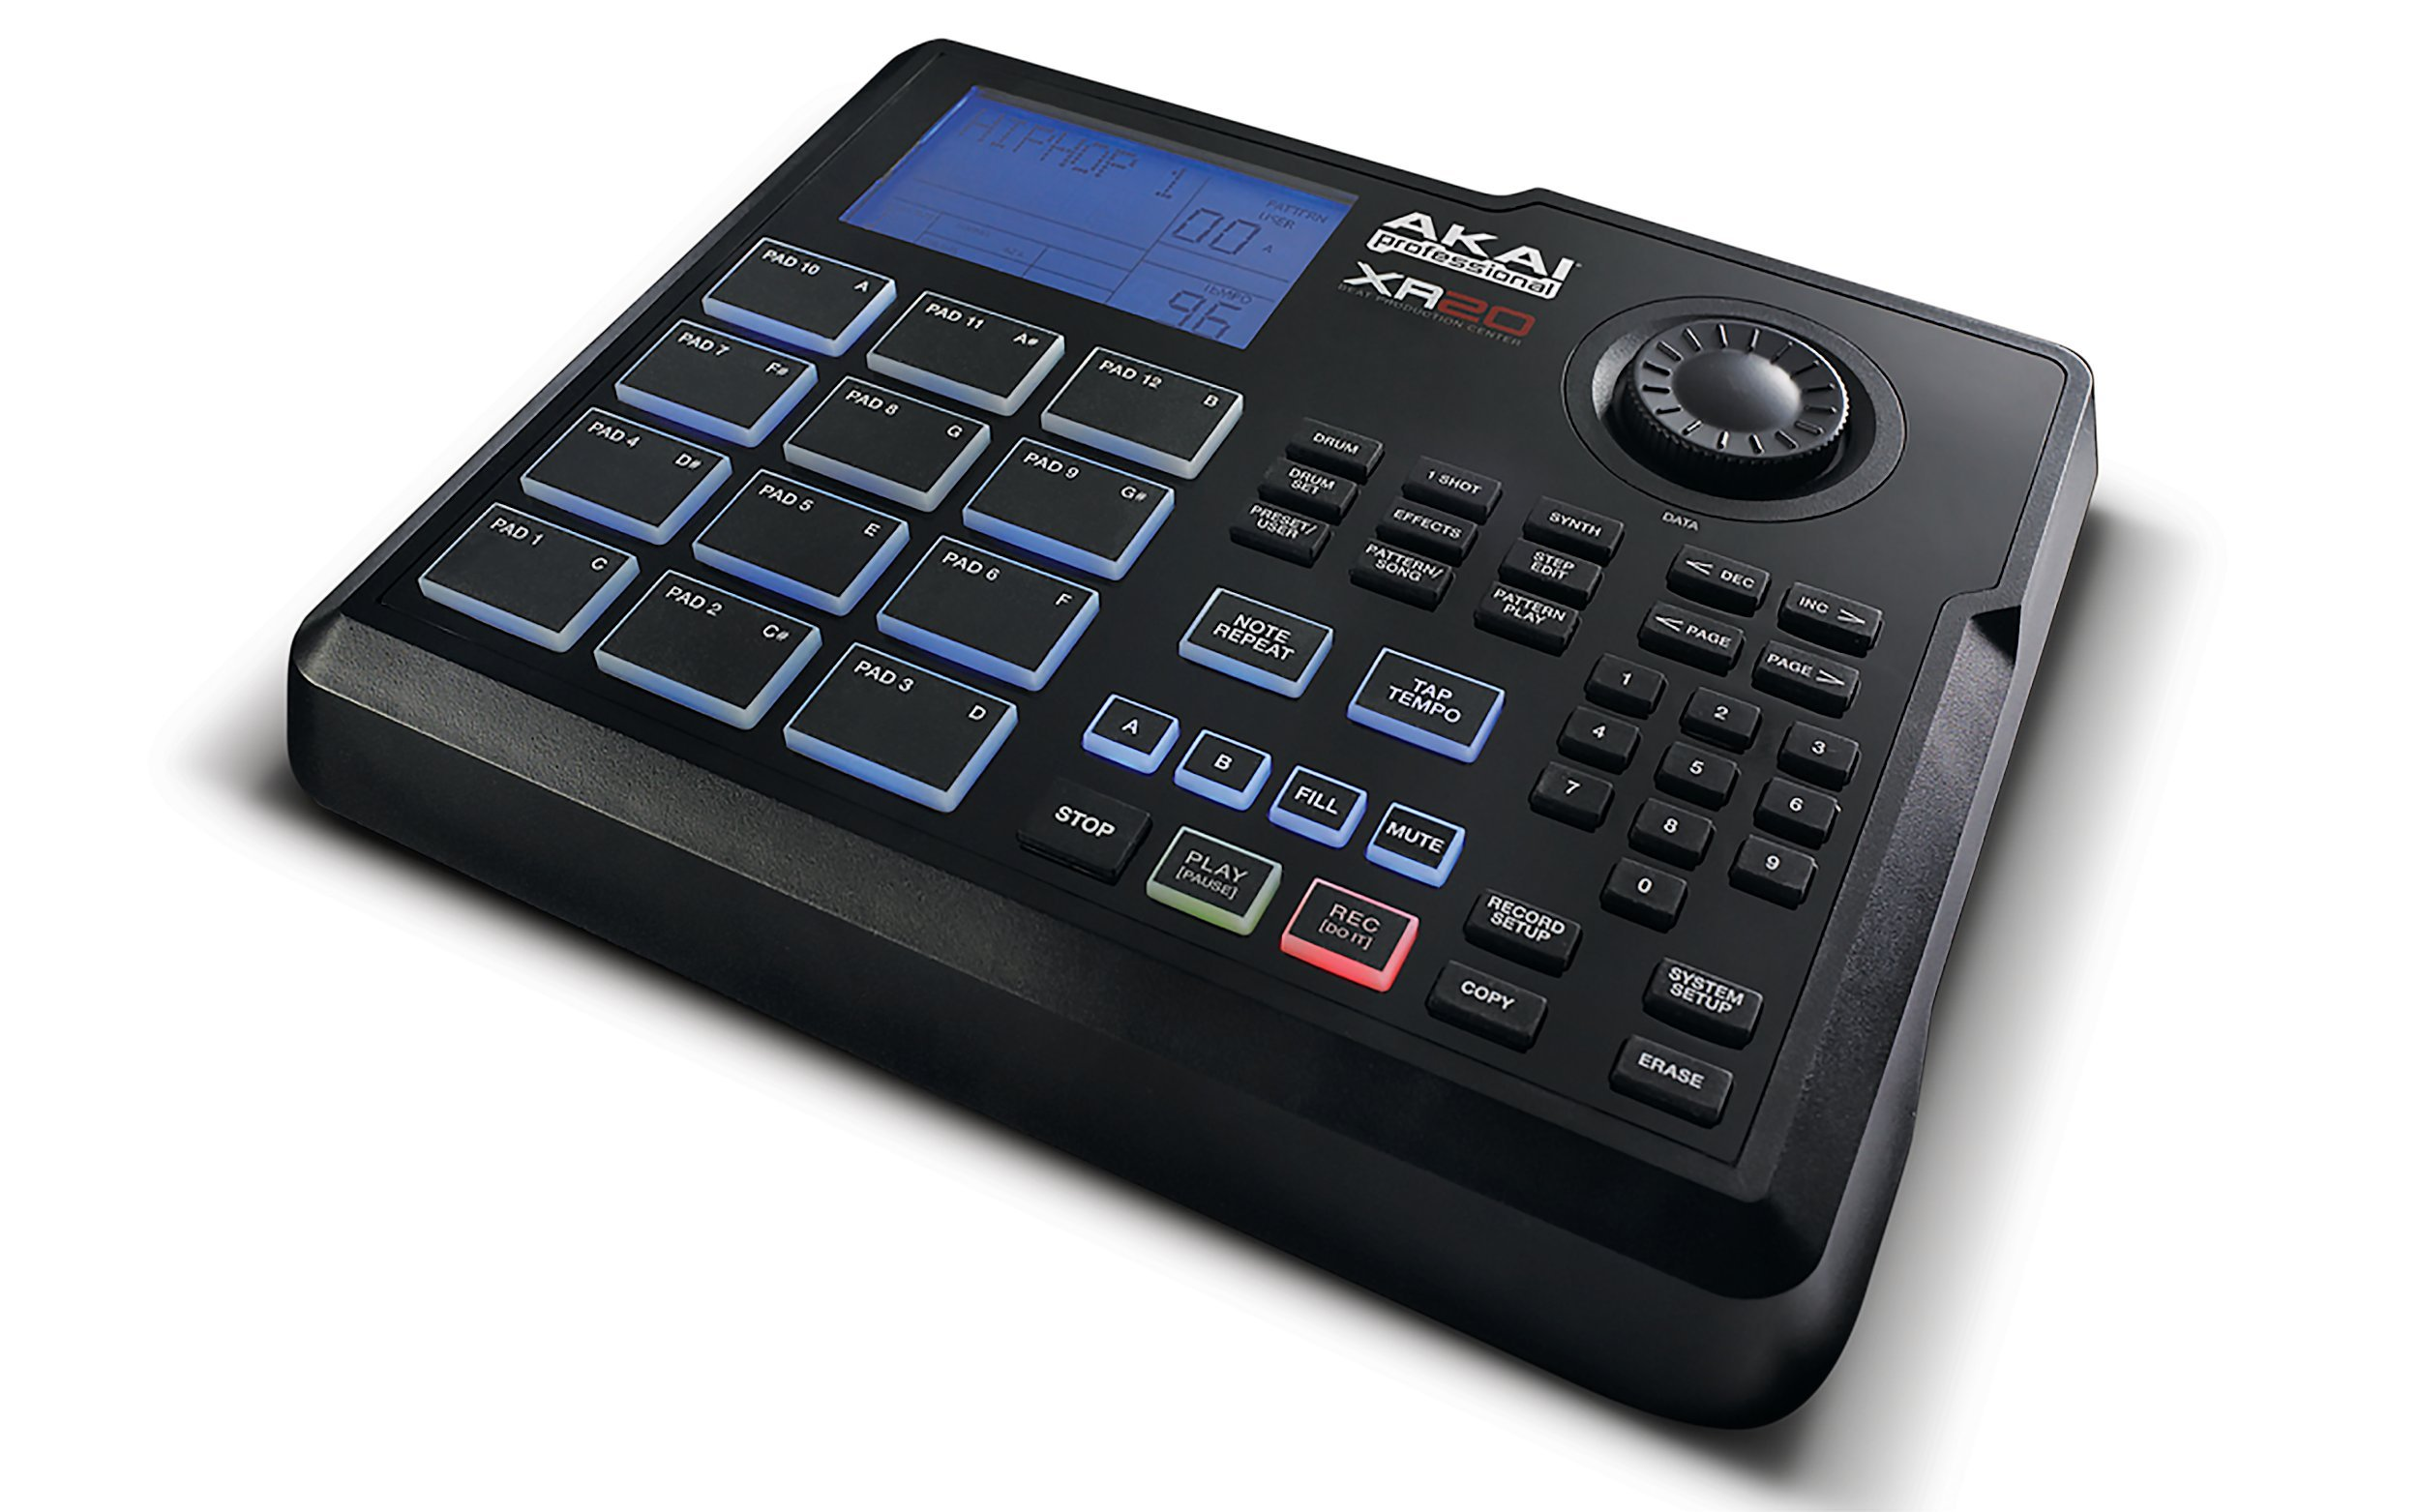 Akai Professional XR20 | Beat Production Station Drum Machine with 12 Trigger Pads, Note Repeat, and 700 Sounds by Akai Professional